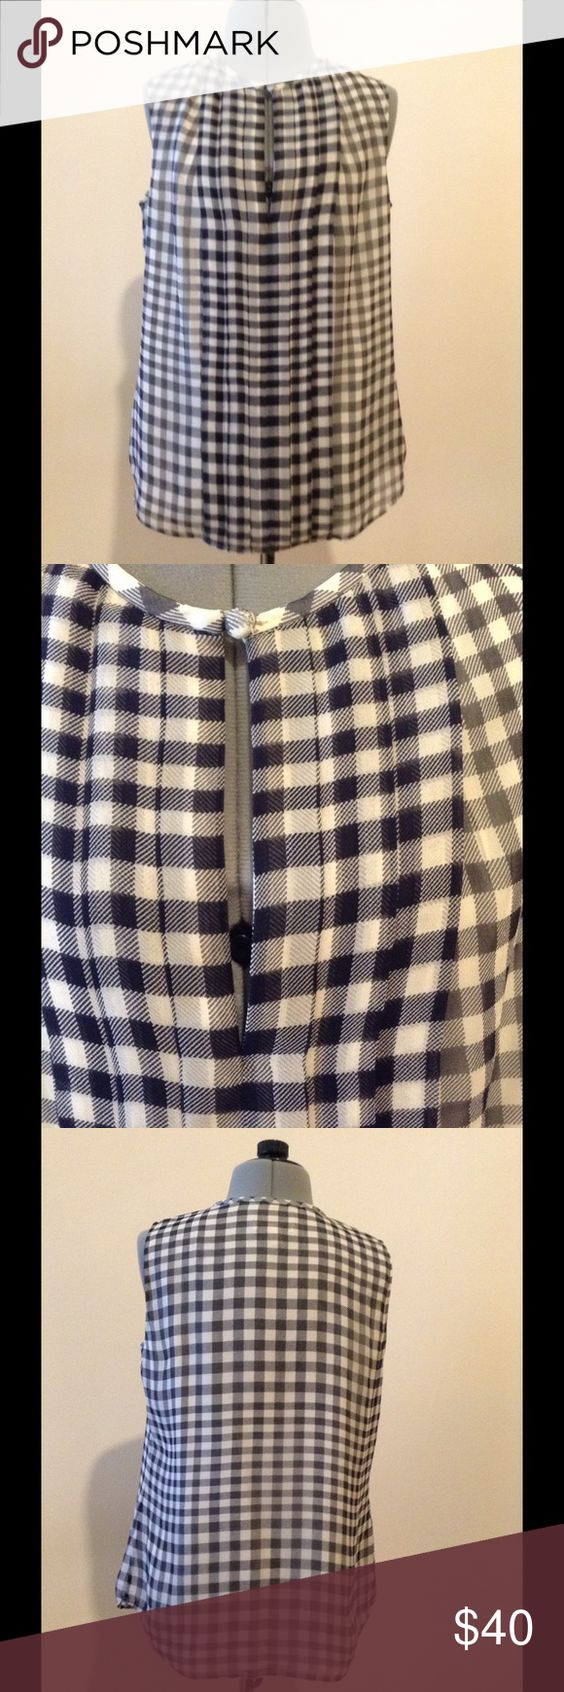 "J Crew silk keyhole plaid blouse This silk blouse is so versatile, you will find yourself grabbing for it all the time! Measurements: ( laying flat) shoulder to shoulder: 12.25"", bust: 16.50"", waist: 17"", hip: 18"", length: 23.15"". Size 00. She'll: 100% silk, lining: 100% polyester. J. Crew Tops Blouses"